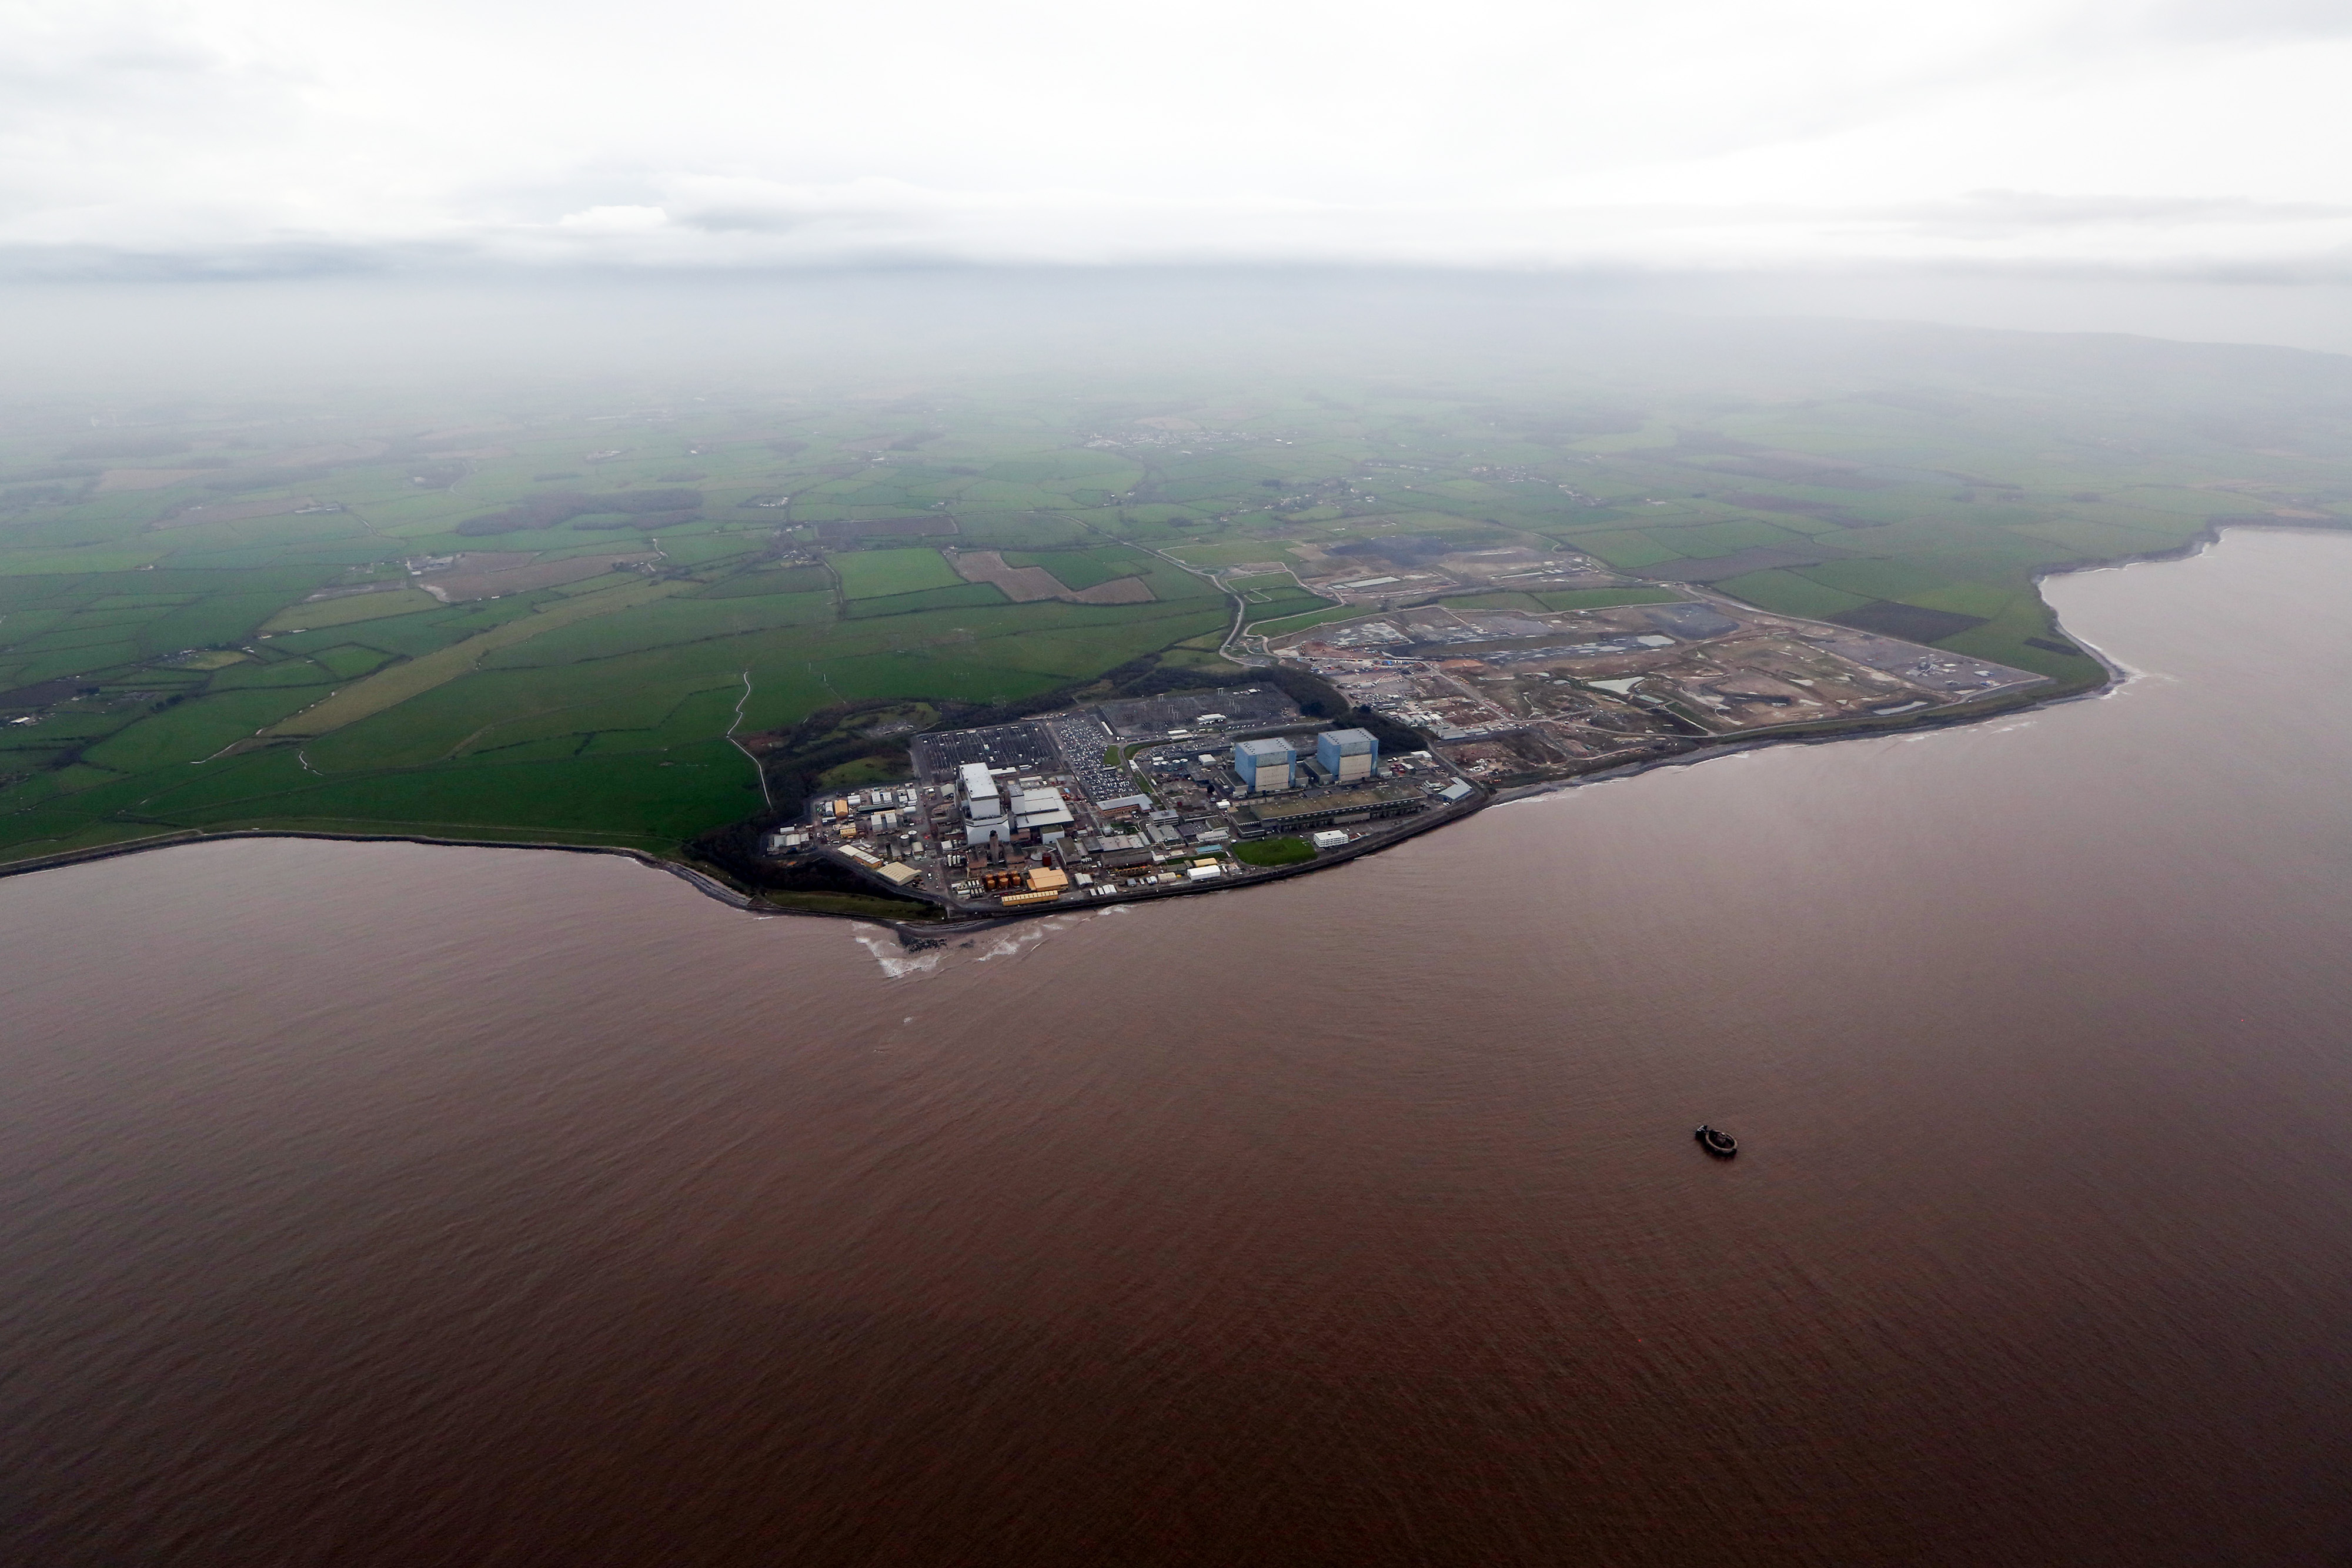 EDF's Hinkley Point B Nuclear Power Station As Company Agrees Deal With China General Nuclear Power Corp To Build Nuclear Plant